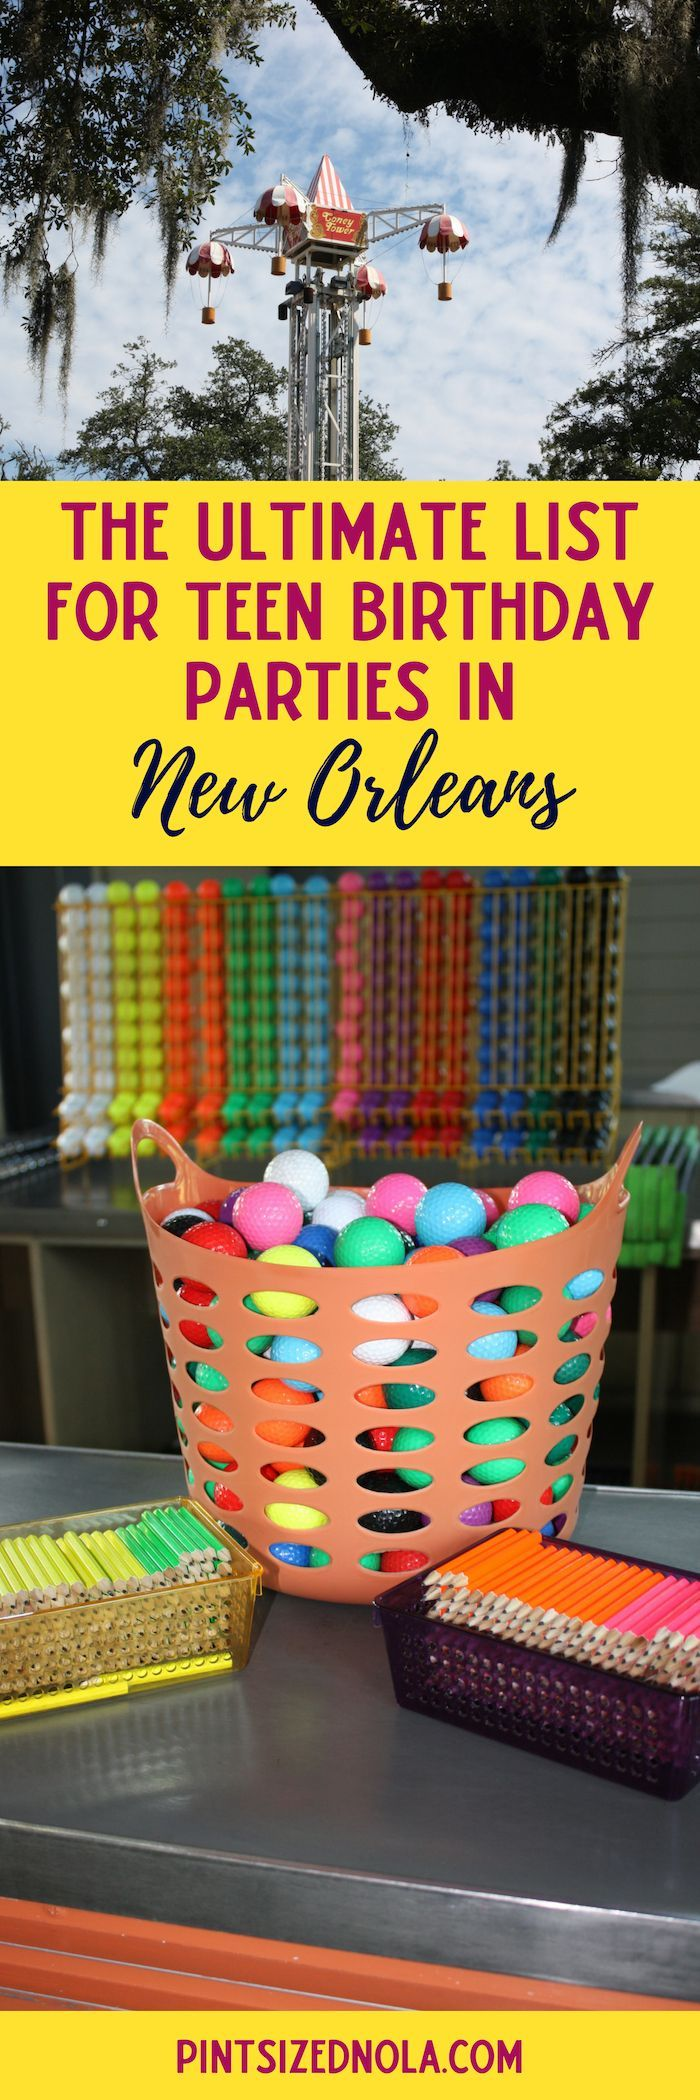 Teen Birthday Parties In New Orleans The Ultimate List Of Locations That Are Perfect For And Tween